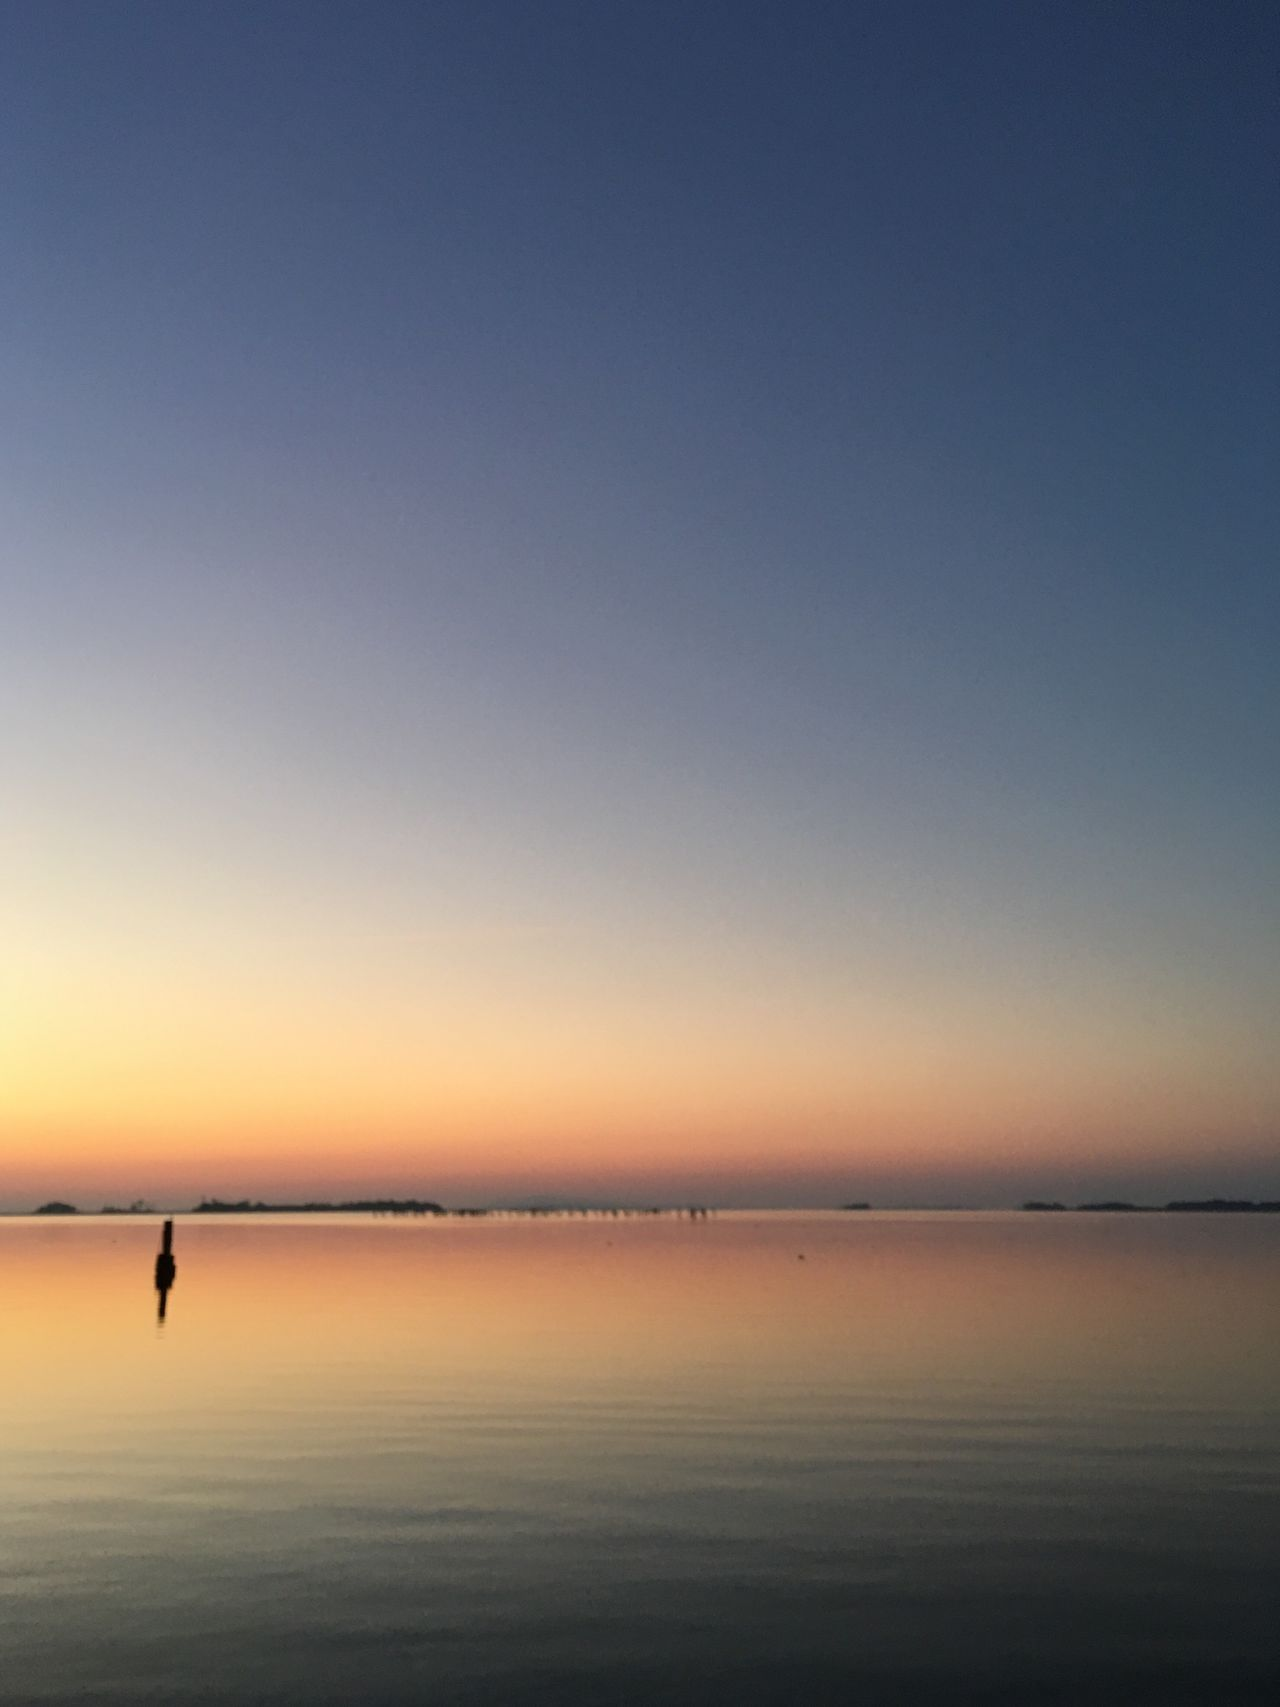 EyeEm Selects Tranquility Scenics Nature Beauty In Nature Sunset Tranquil Scene Water Idyllic Sea Sky Waterfront Outdoors Horizon Over Water No People Beach Clear Sky Day